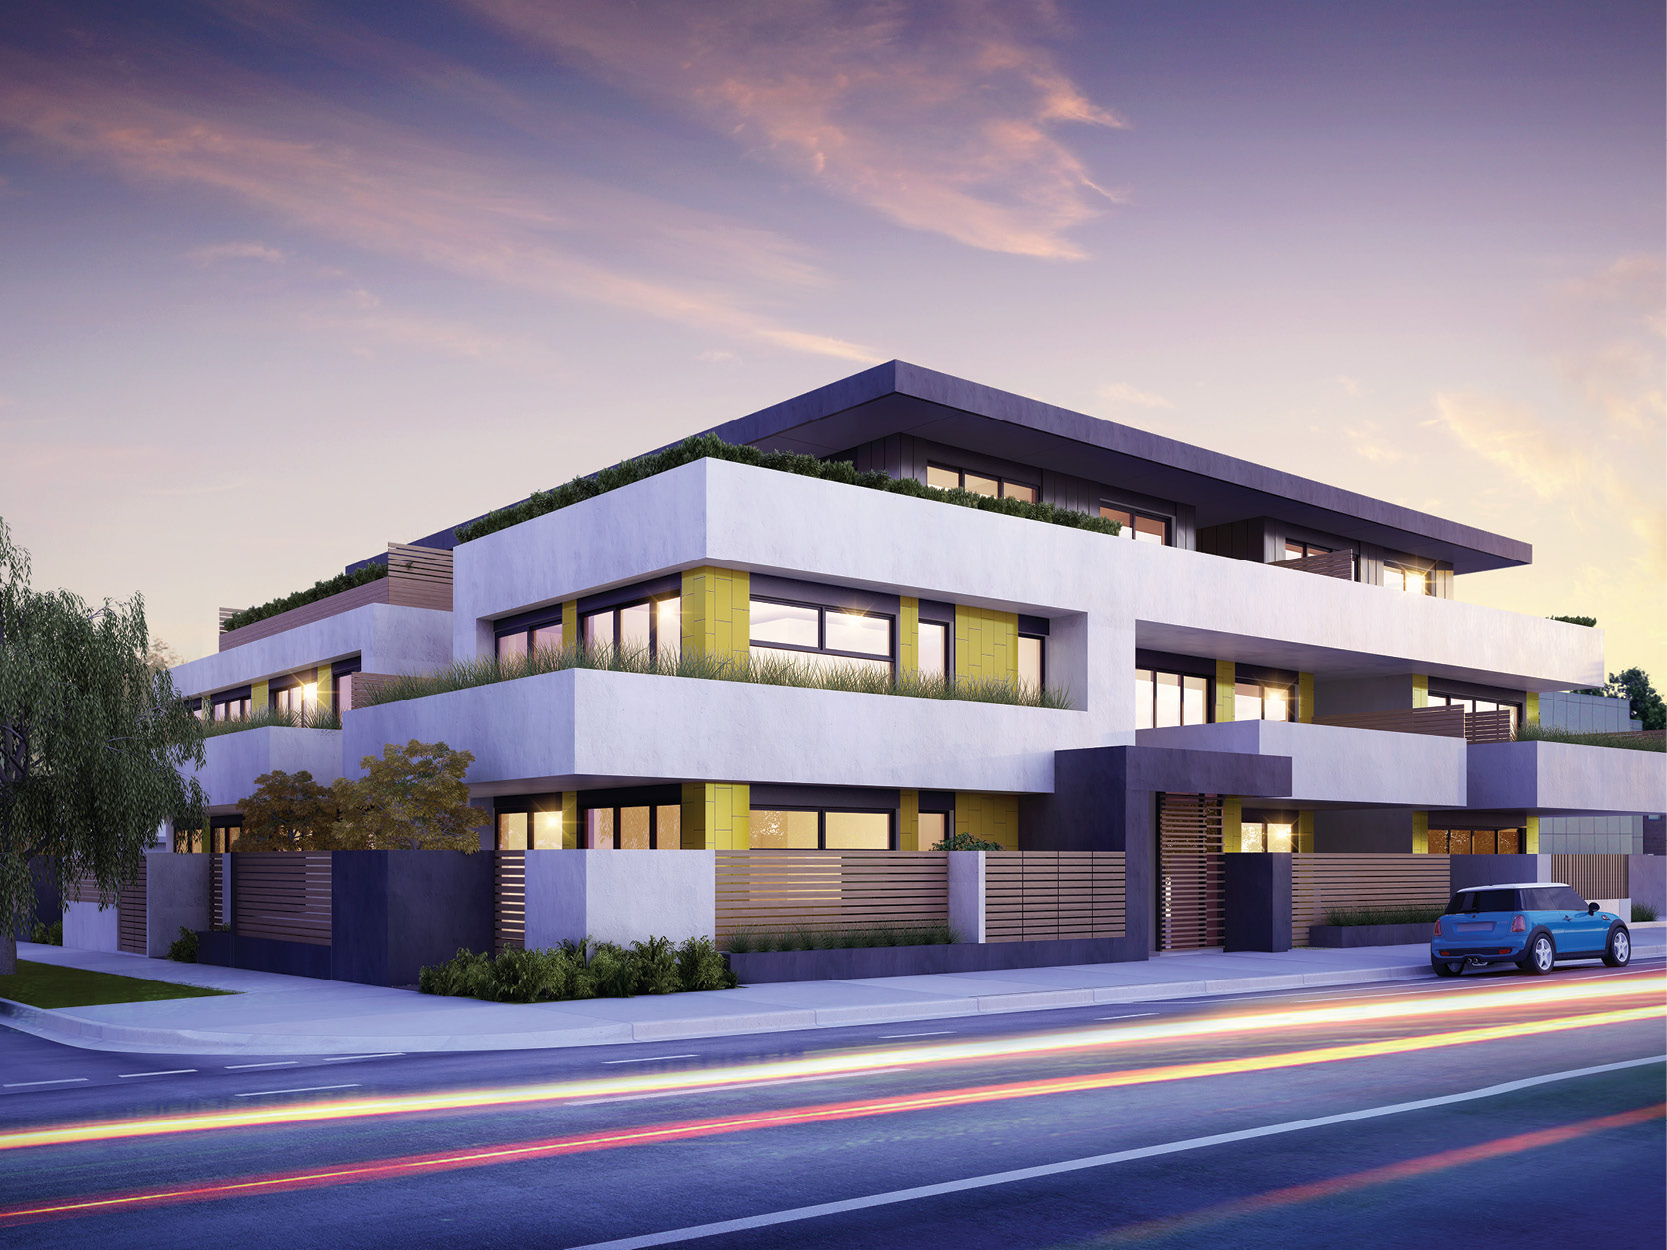 310 Station Street, Chelsea VIC 3196 - Apartment For Sale ...